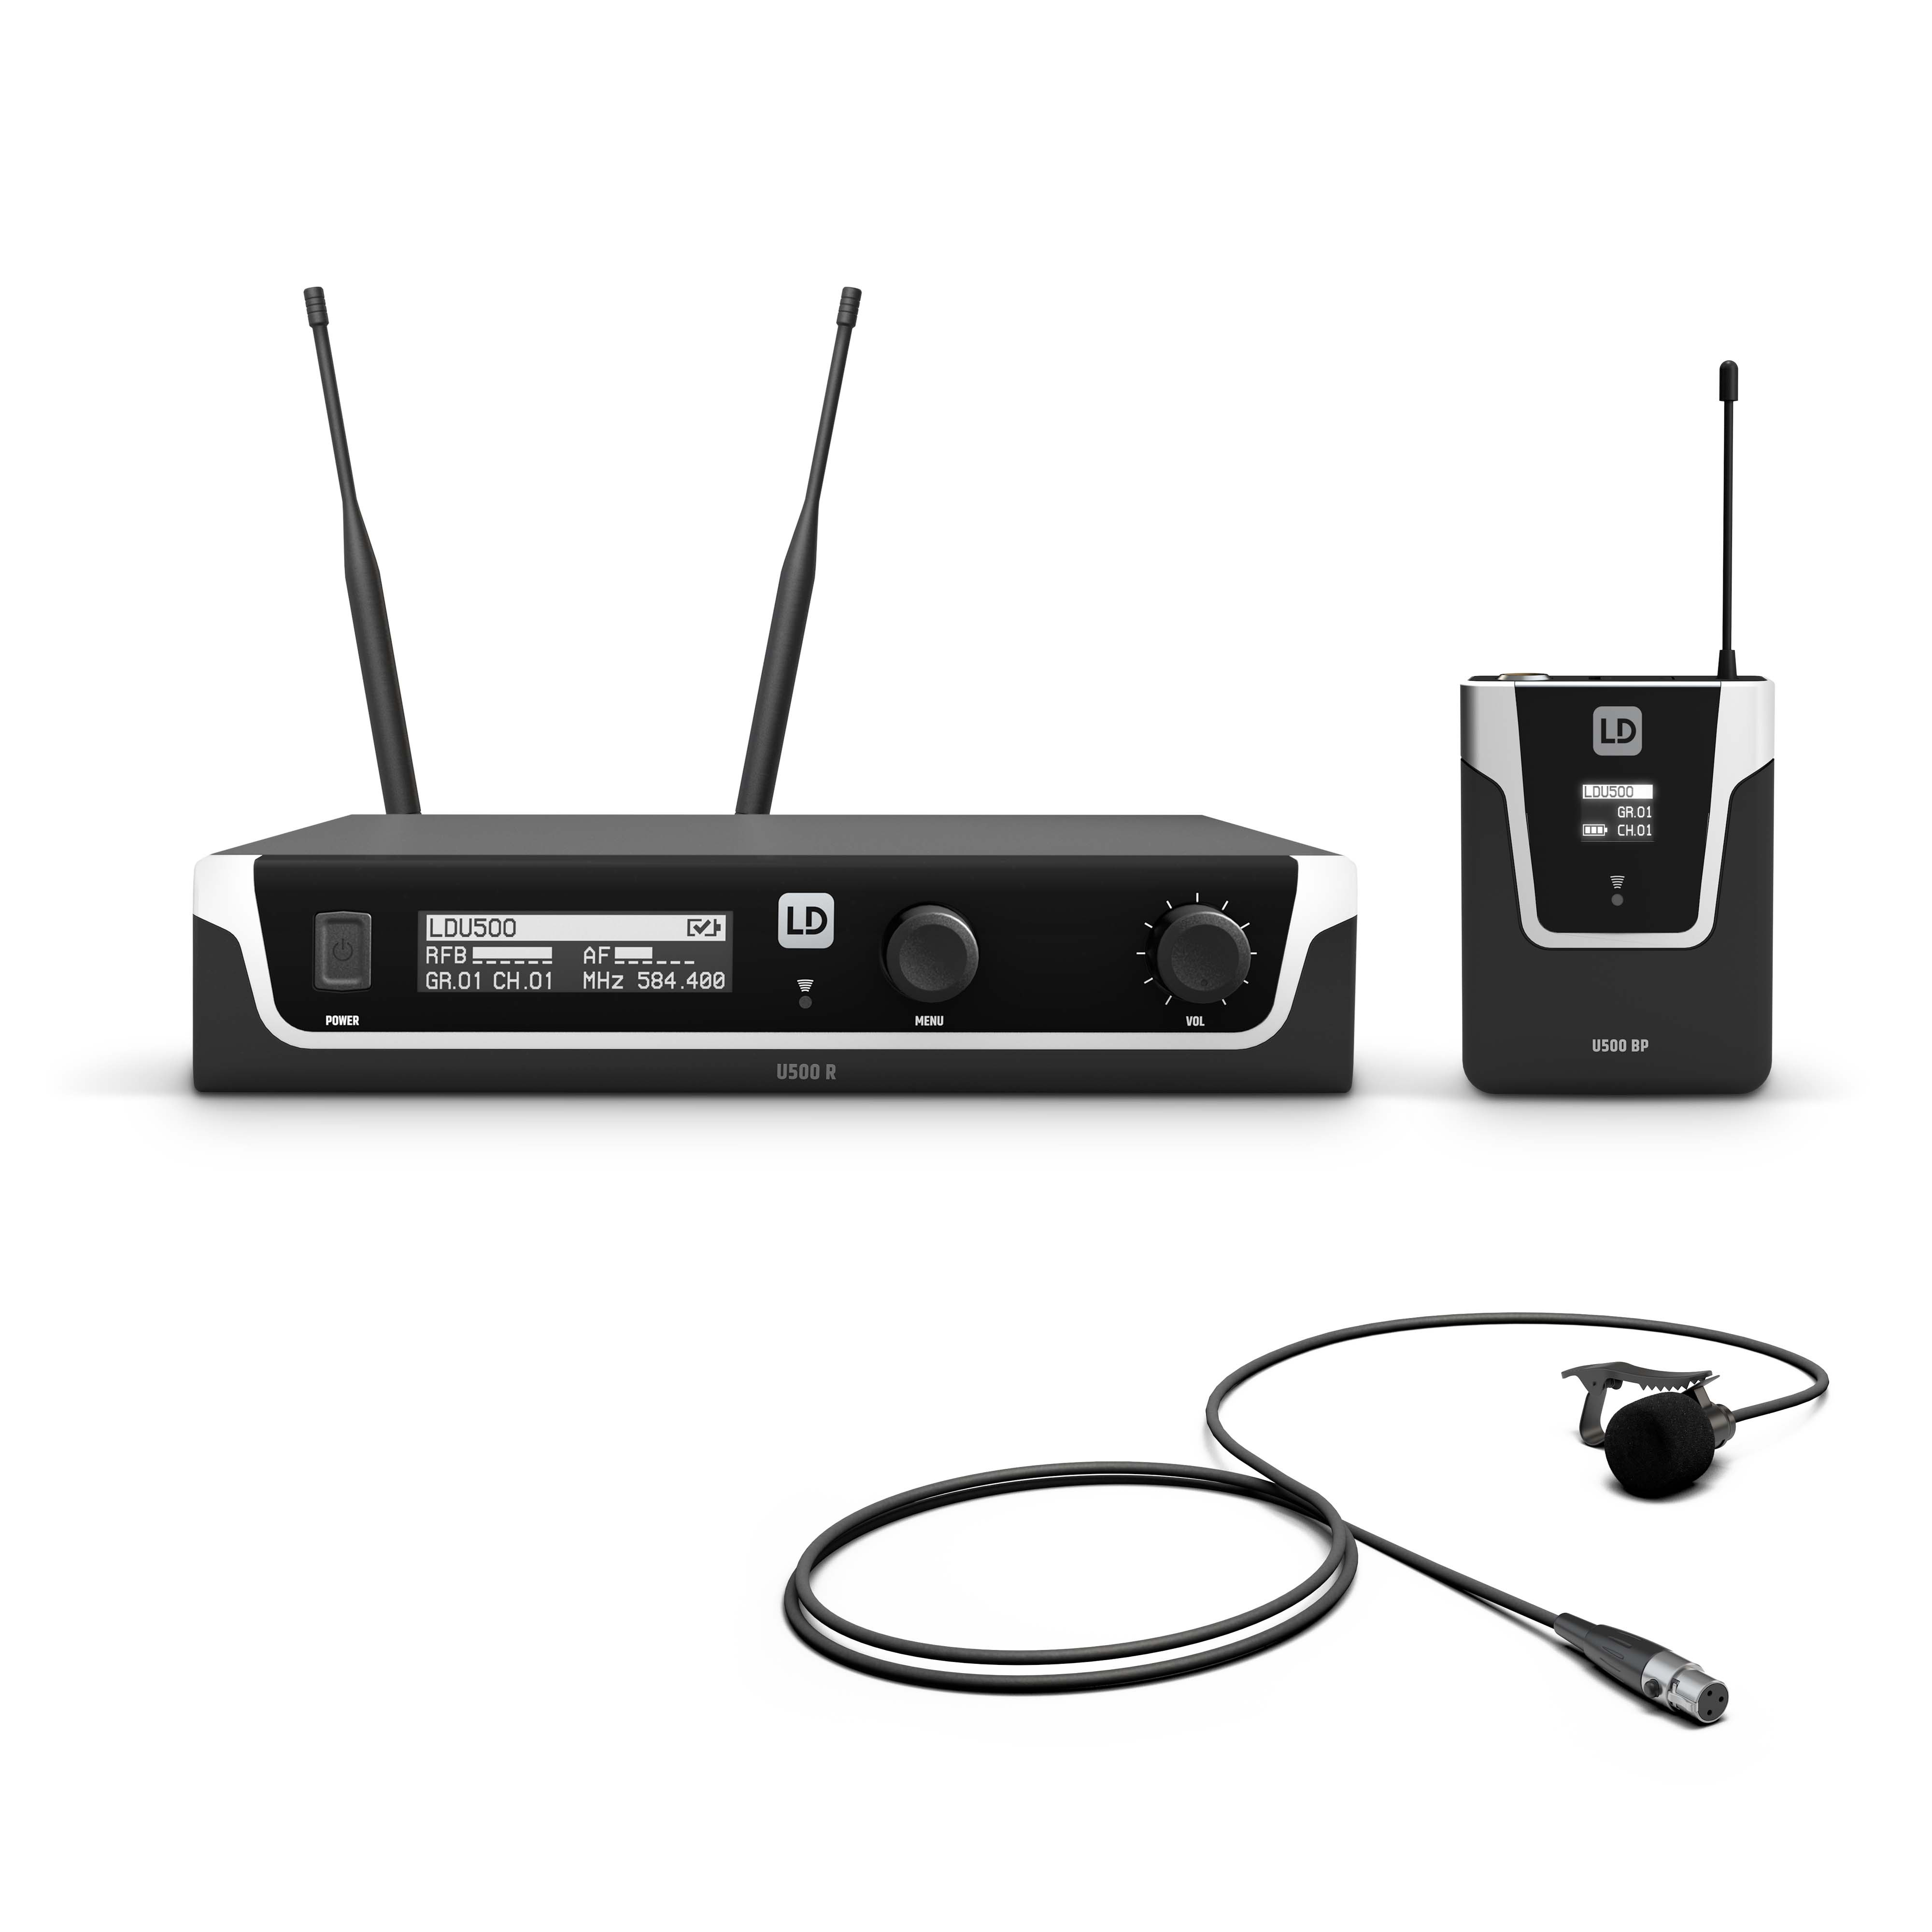 U506 UK BPL Wireless Microphone System with Bodypack and Lavalier Microphone